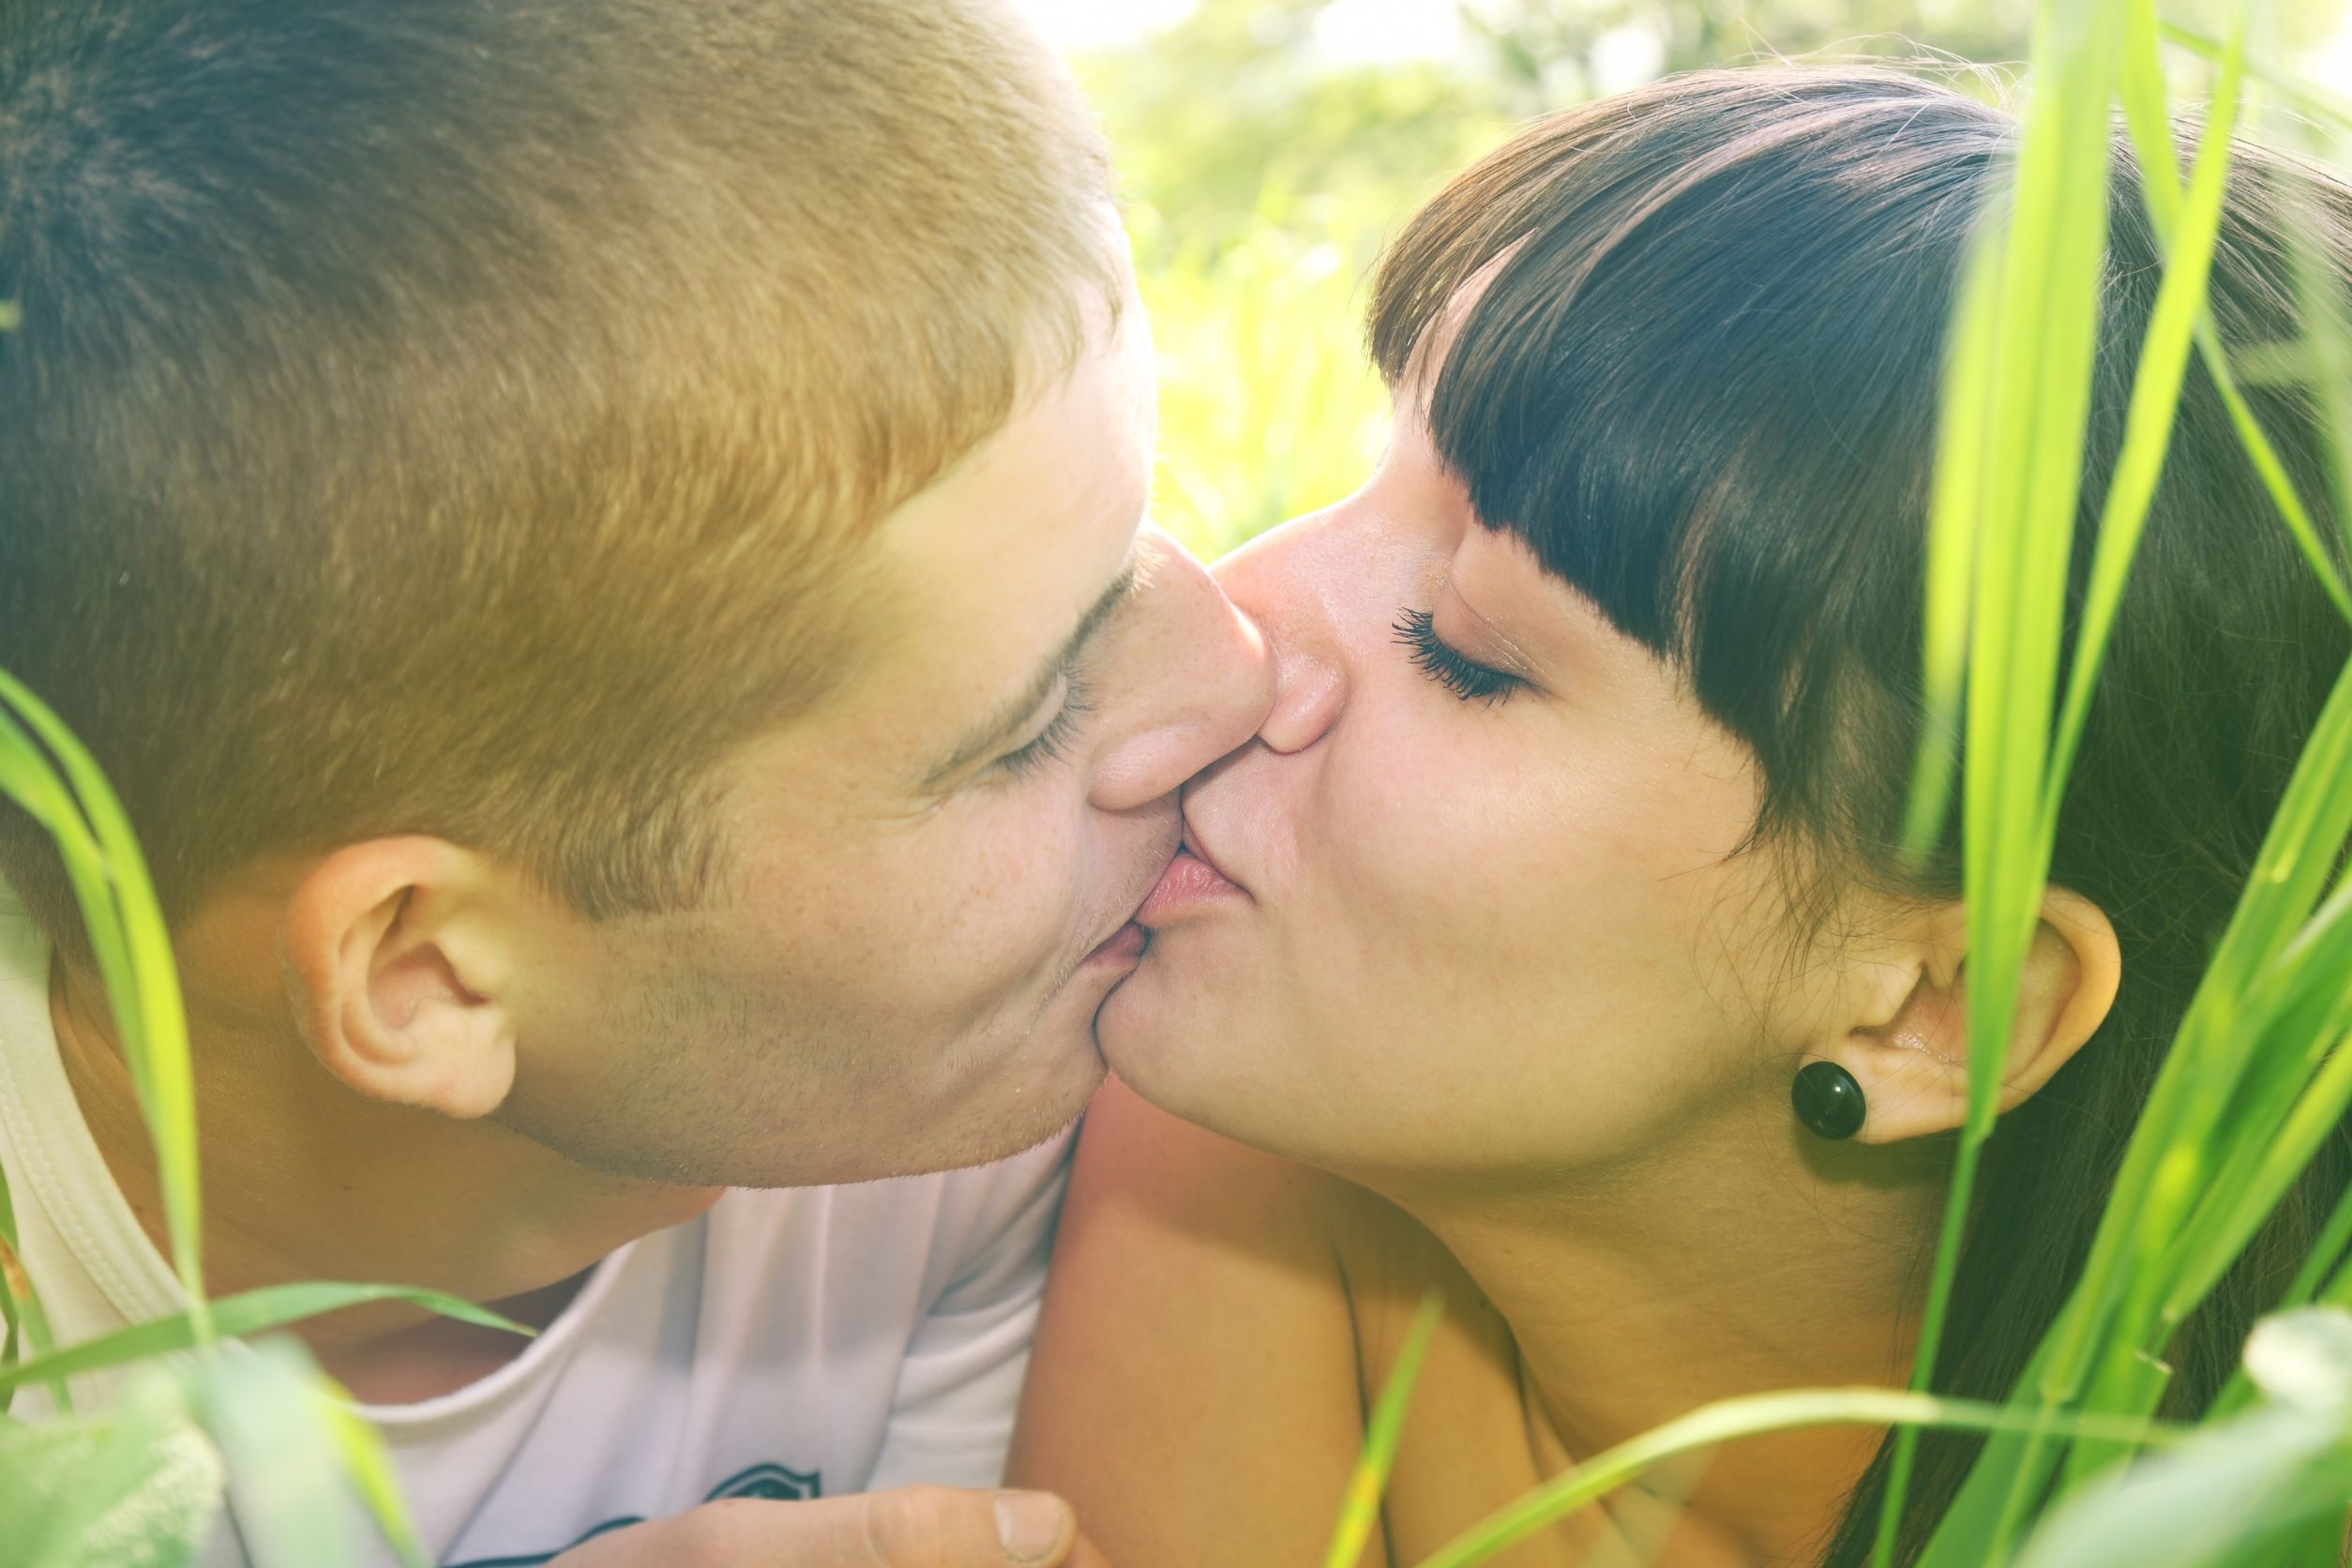 couple_kissing_in_grass